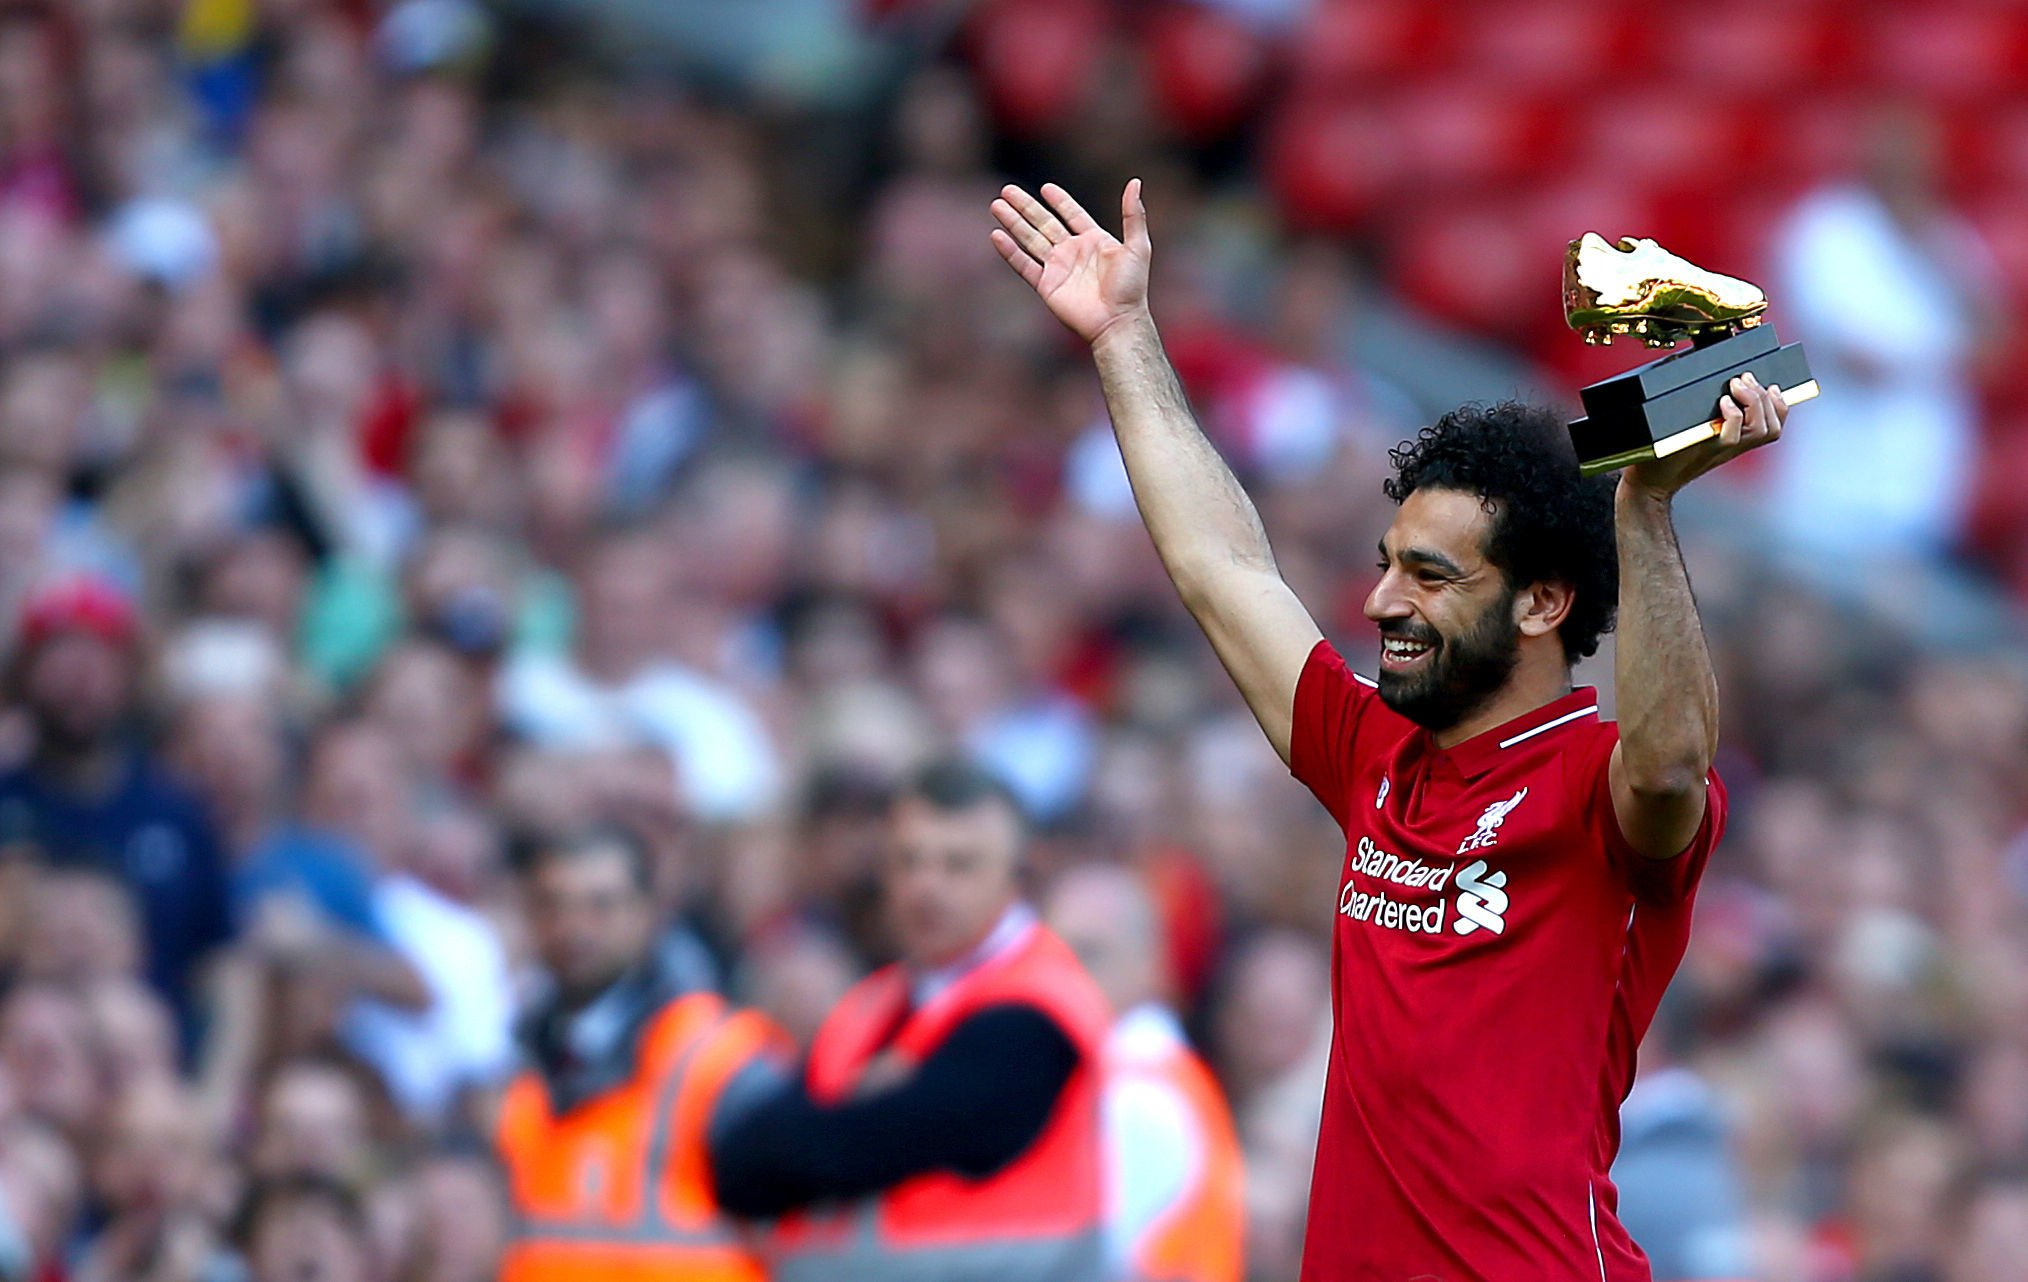 """Liverpool's Mohamed Salah with the golden boot award after the Premier League match at Anfield, Liverpool. PRESS ASSOCIATION Photo. Picture date: Sunday May 13, 2018. See PA story SOCCER Liverpool. Photo credit should read: Dave Thompson/PA Wire. RESTRICTIONS: EDITORIAL USE ONLY No use with unauthorised audio, video, data, fixture lists, club/league logos or """"live"""" services. Online in-match use limited to 75 images, no video emulation. No use in betting, games or single club/league/player publications."""